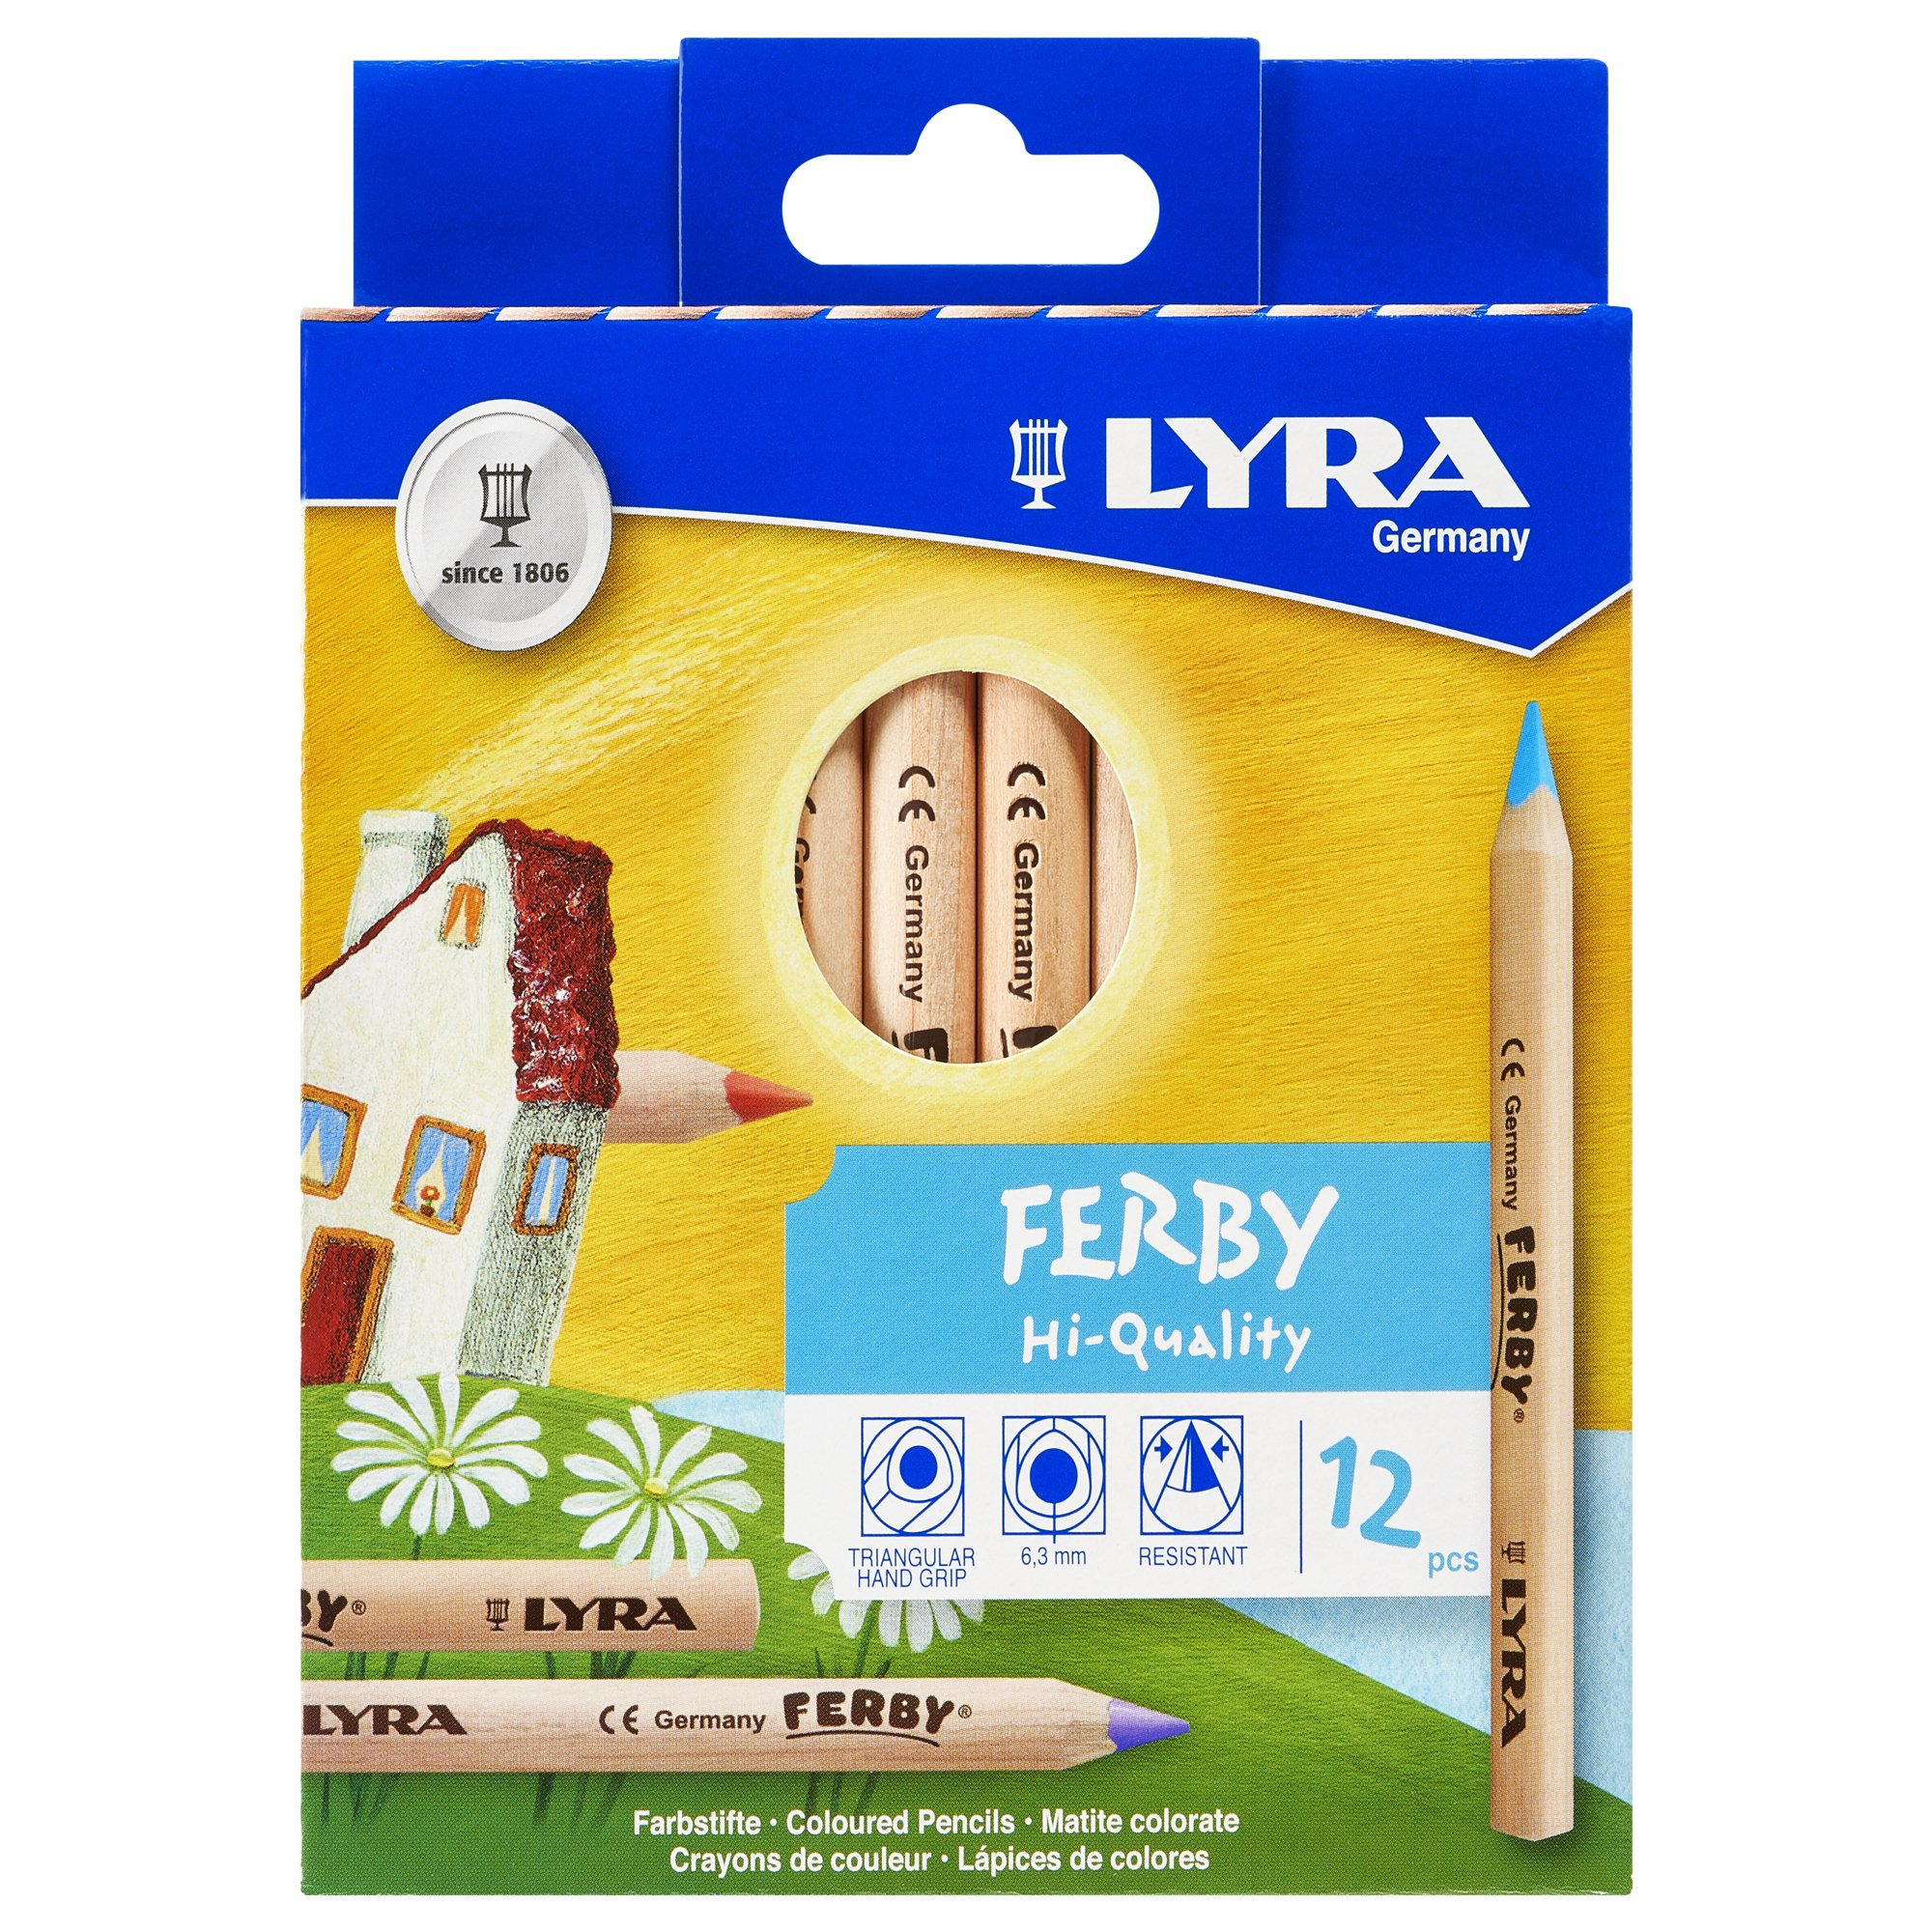 LYRA Ferby Giant Triangular Colored Pencils, Unlacquered, 6.25 Millimeter Cores, Assorted Colors, 12 Count (3611120) by Lyra (Image #1)